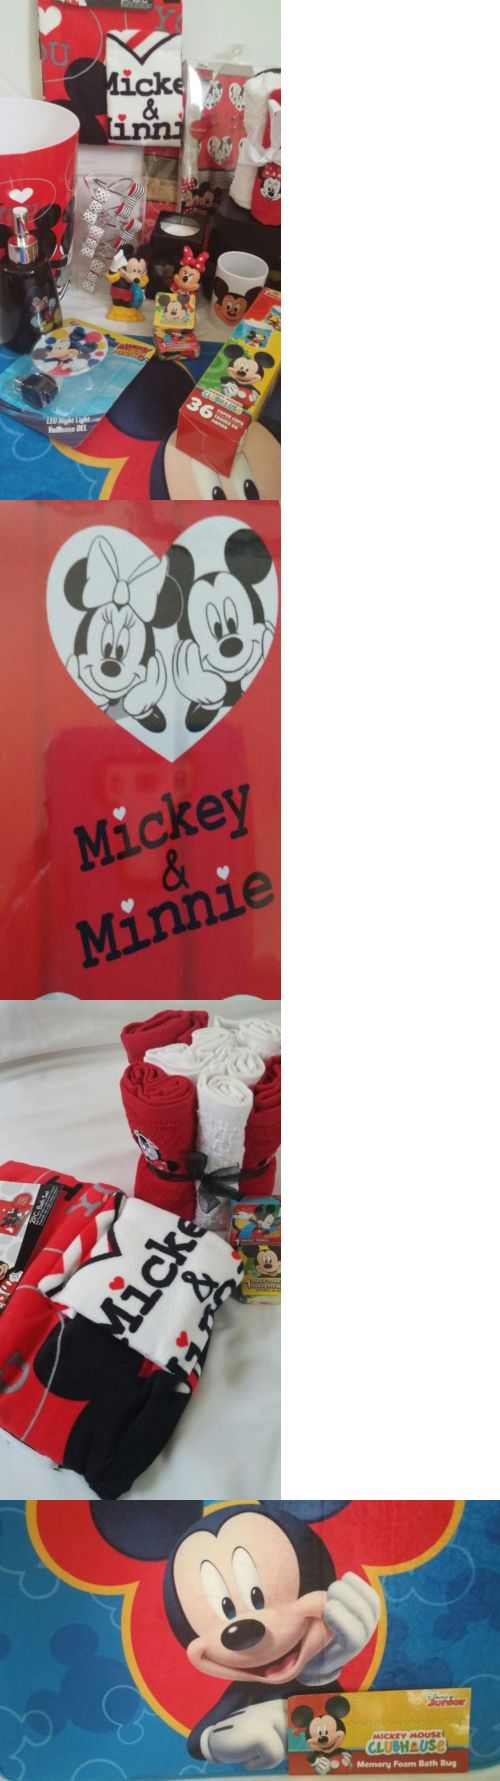 Other Kids and Teens Items 176989: Mickey N Minnie Mouse Bathroom 32Pcs Set Includes Shower Curtain Towel Etc -> BUY IT NOW ONLY: $109 on eBay!